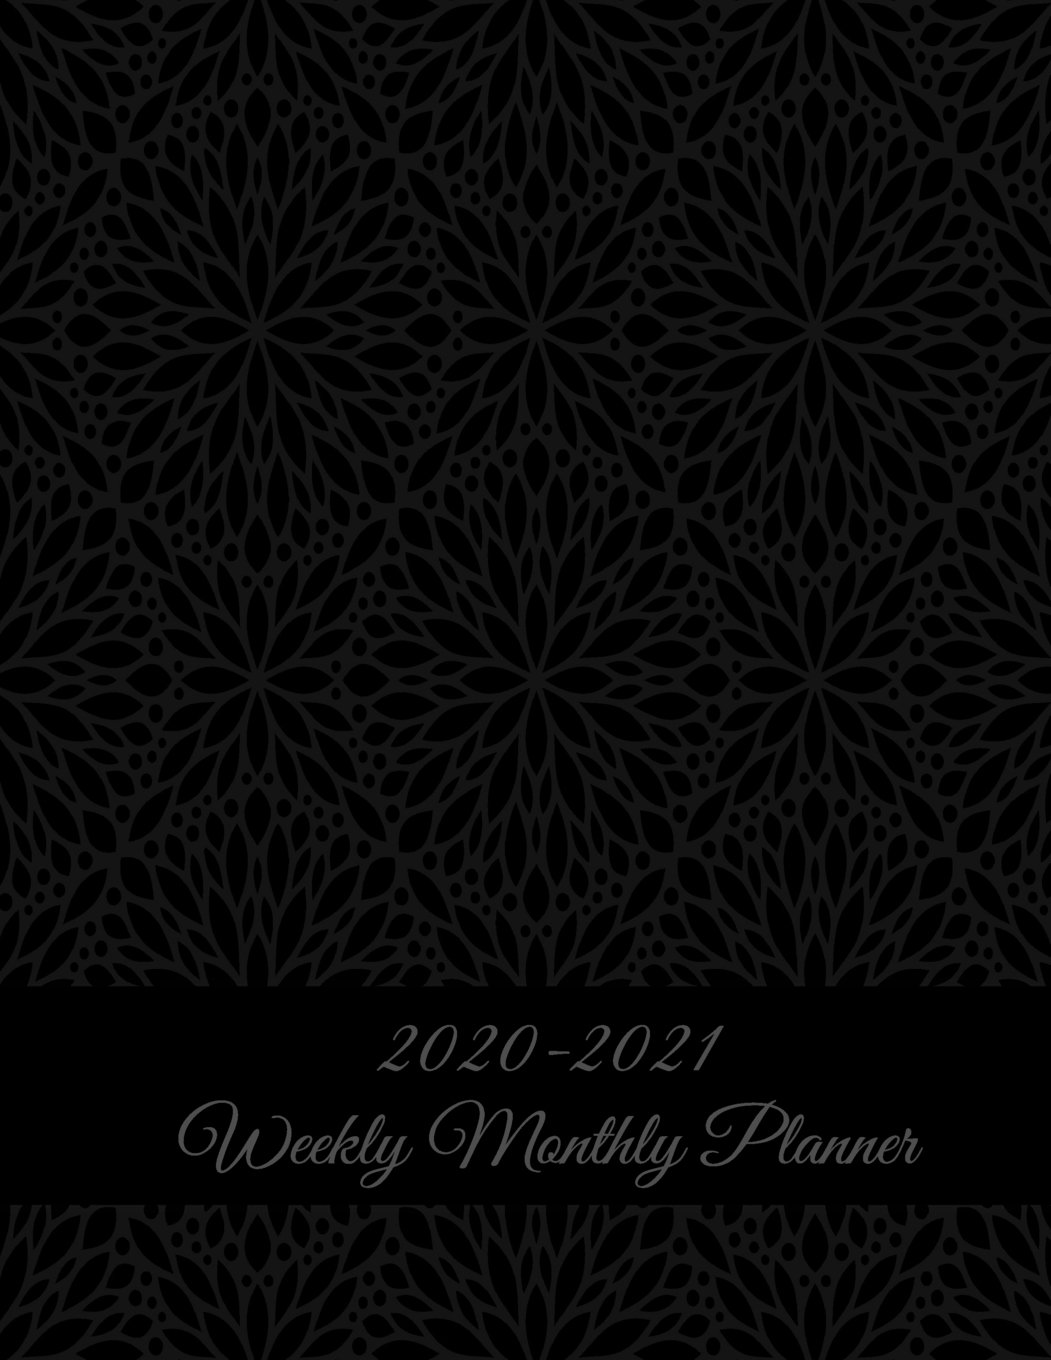 "Read Online 2020-2021 Weekly Monthly Planner: Black Floral, Two year Academic 2020-2021 Calendar Book, Weekly/Monthly/Yearly Calendar Journal, Large 8.5"" x 11"" ... Calendar Schedule Organizer Journal Notebook pdf"